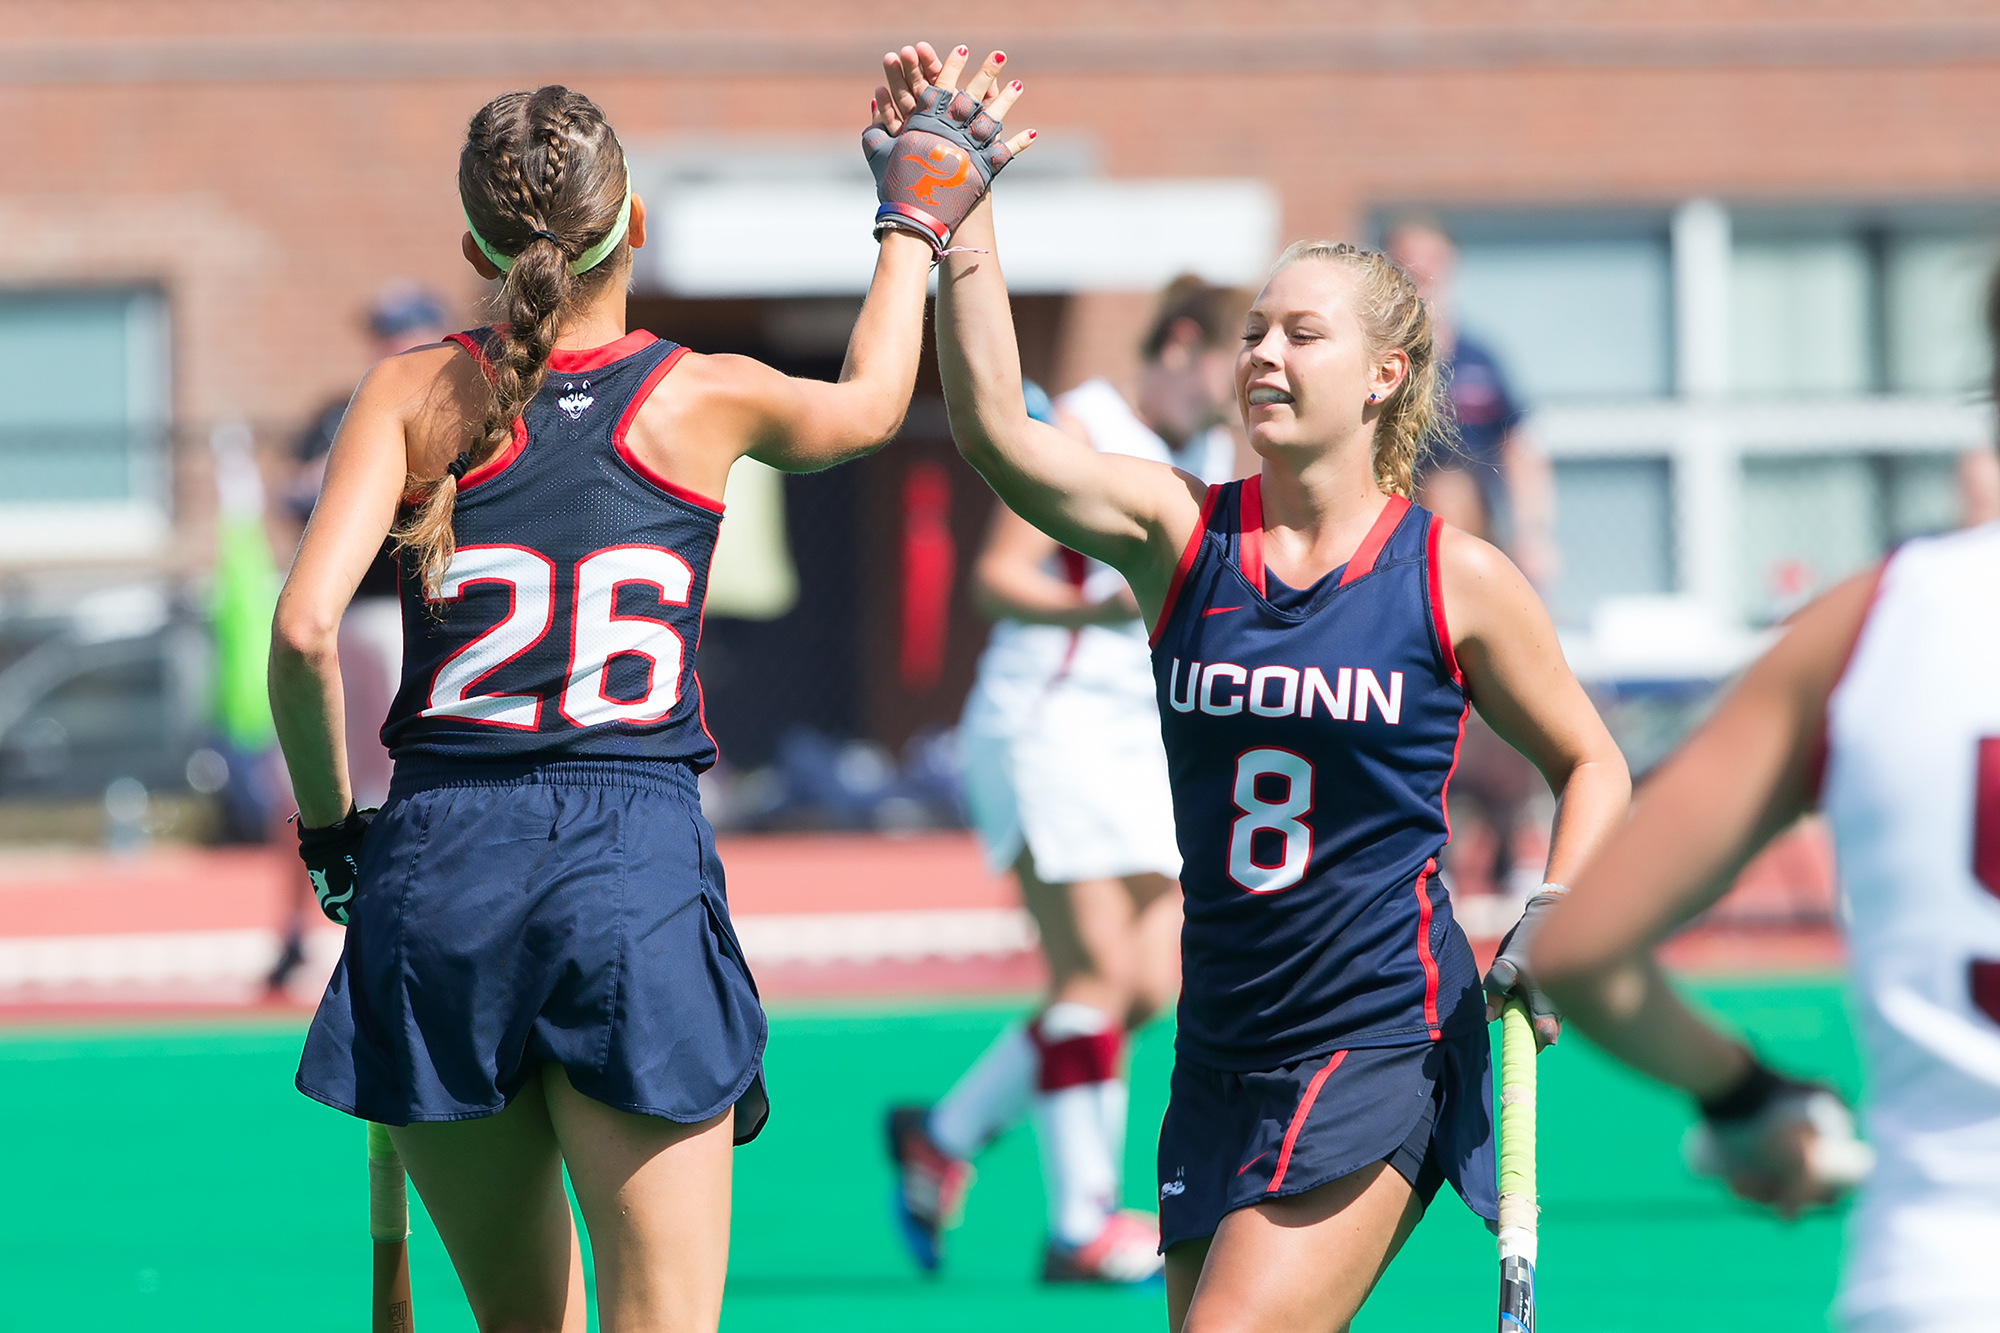 The Huskies won the Big East Field Hockey regular season title on Oct. 21 with a 5-3 win over Georgetown. (Stephen Slade '89 (SFA) for UConn)